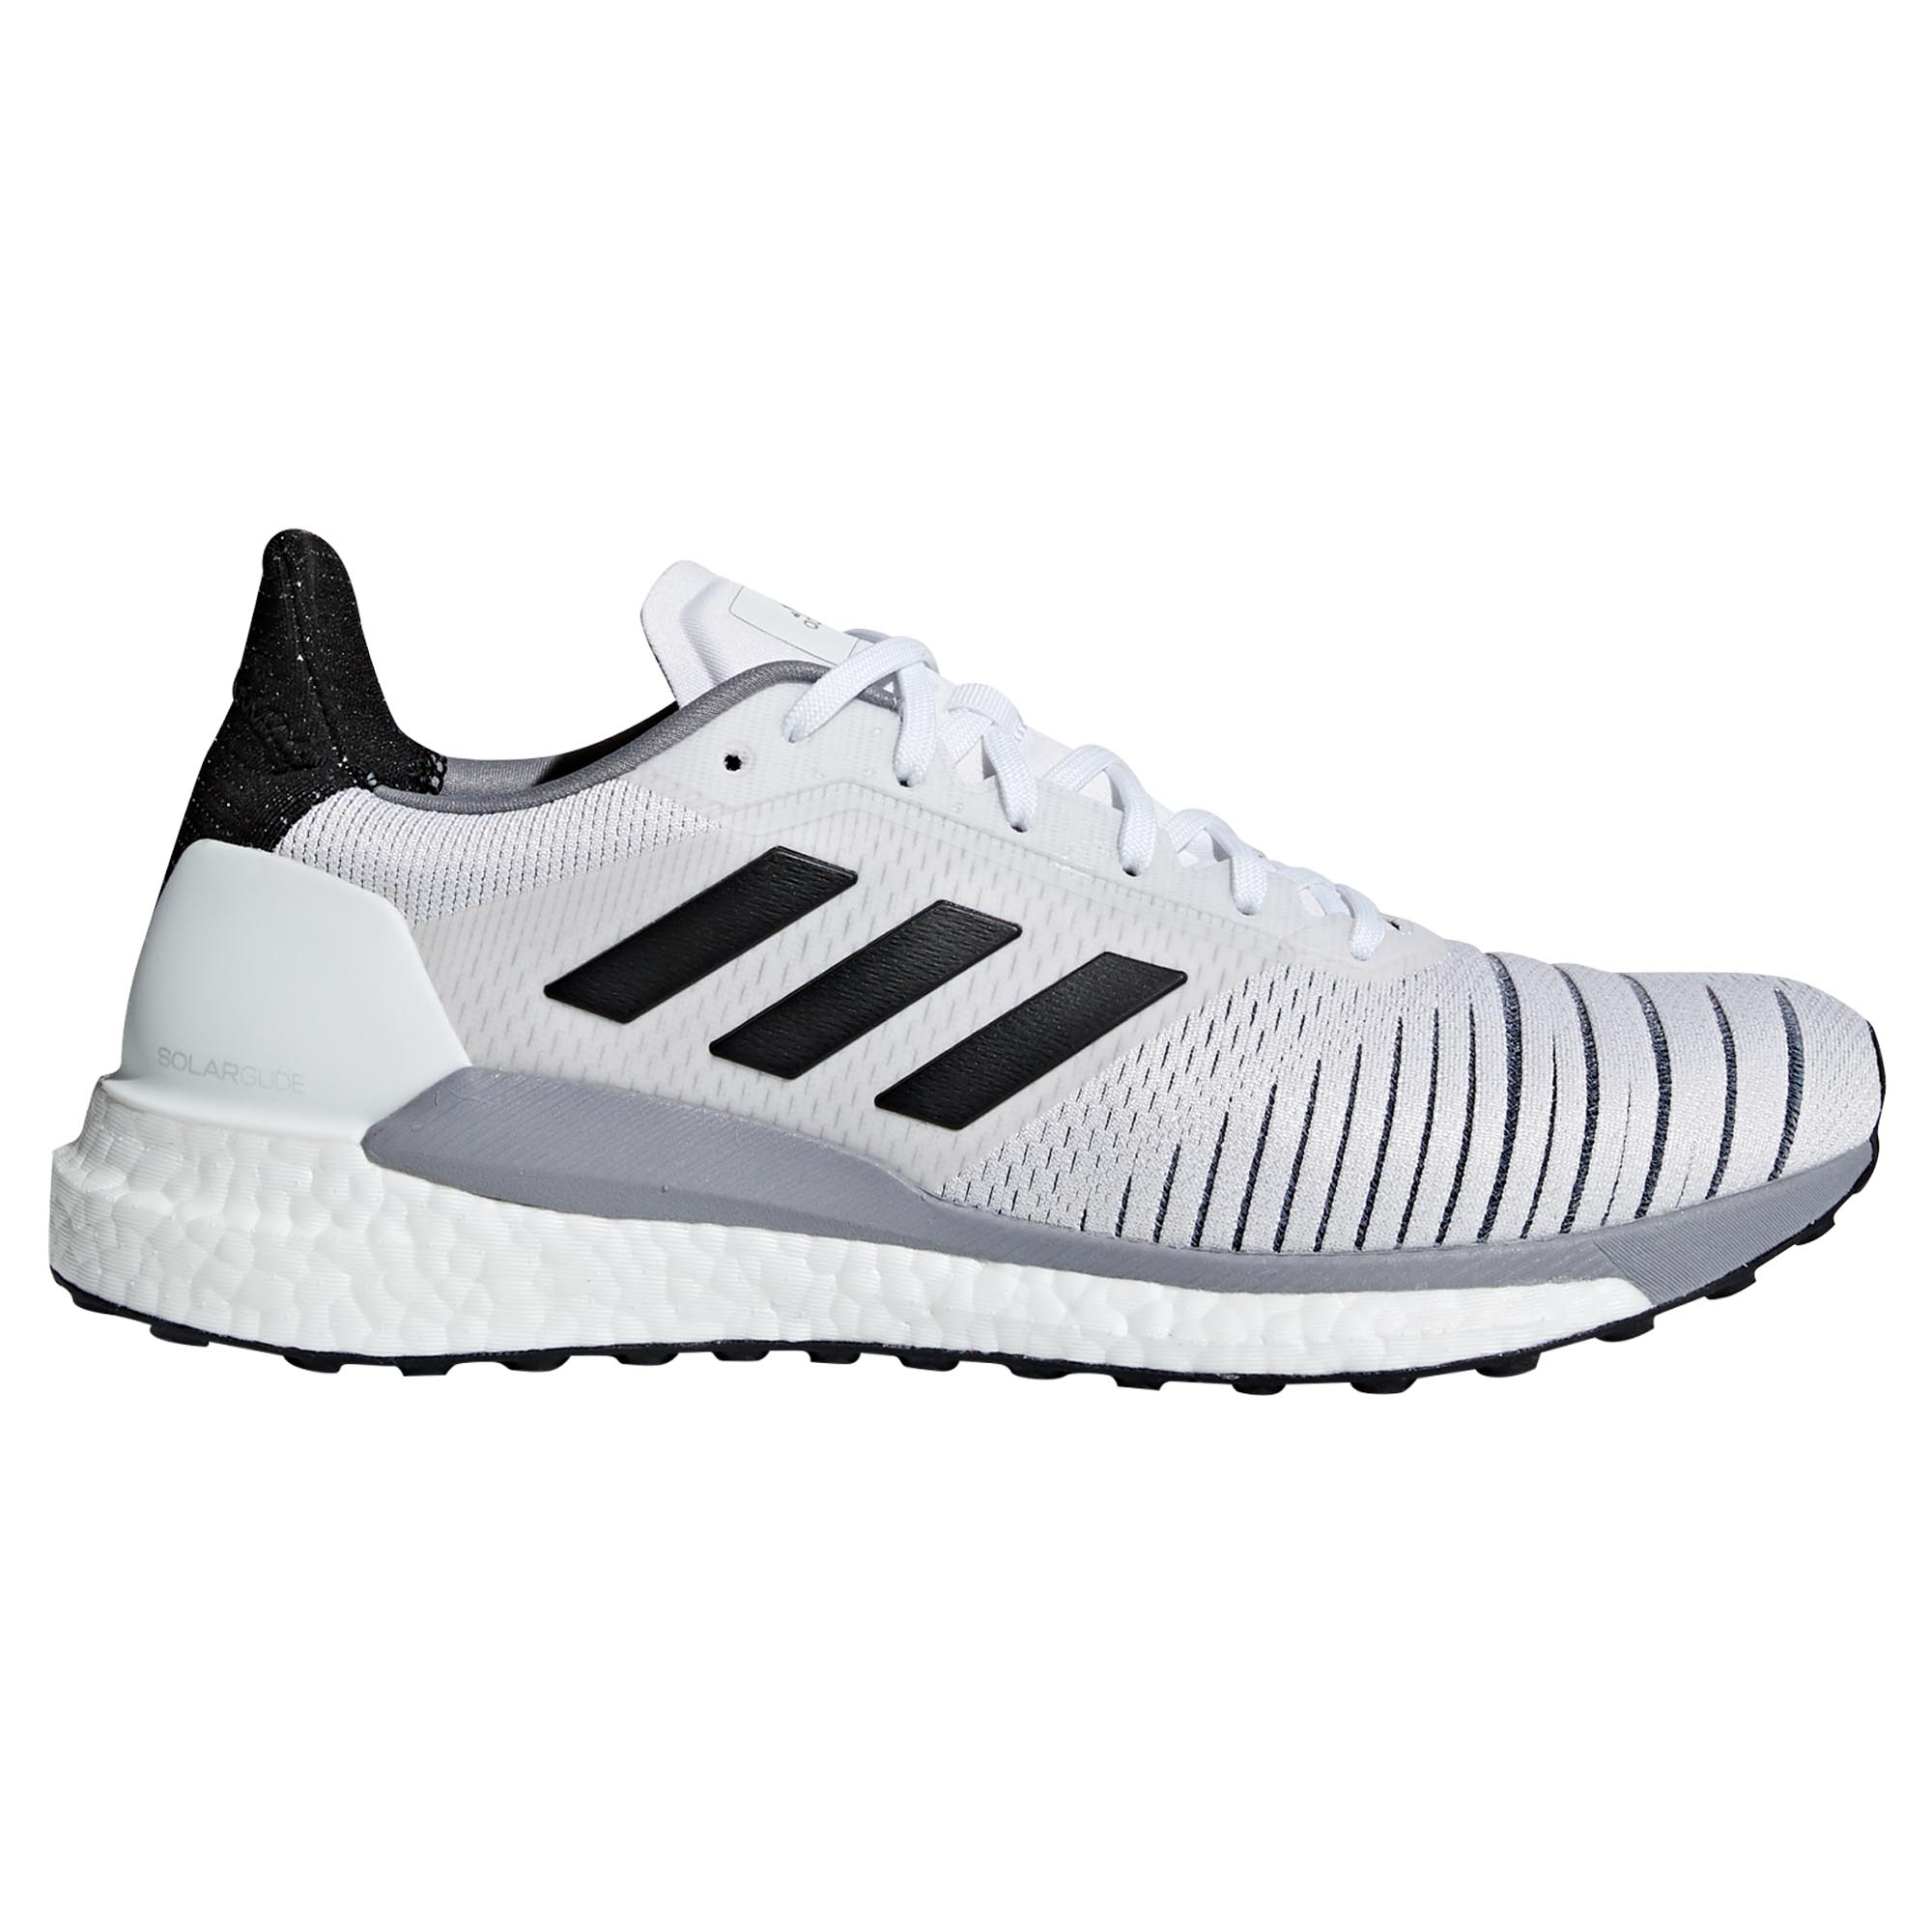 721a2bb05 Solar Glide Mens Running Trainer shoes White Adidas Fitness ...